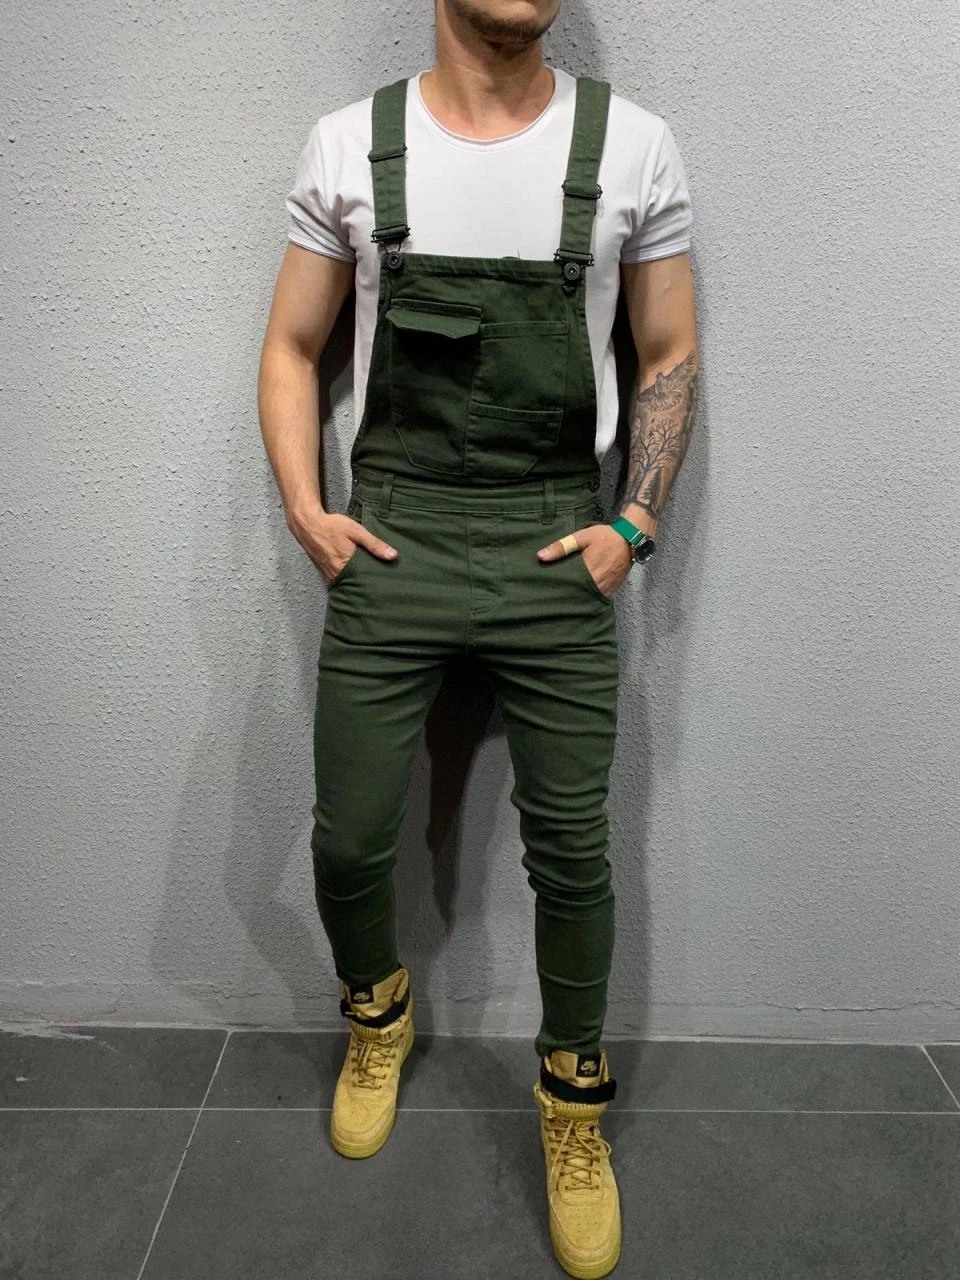 Hot style overalls with multiple pockets pants 1